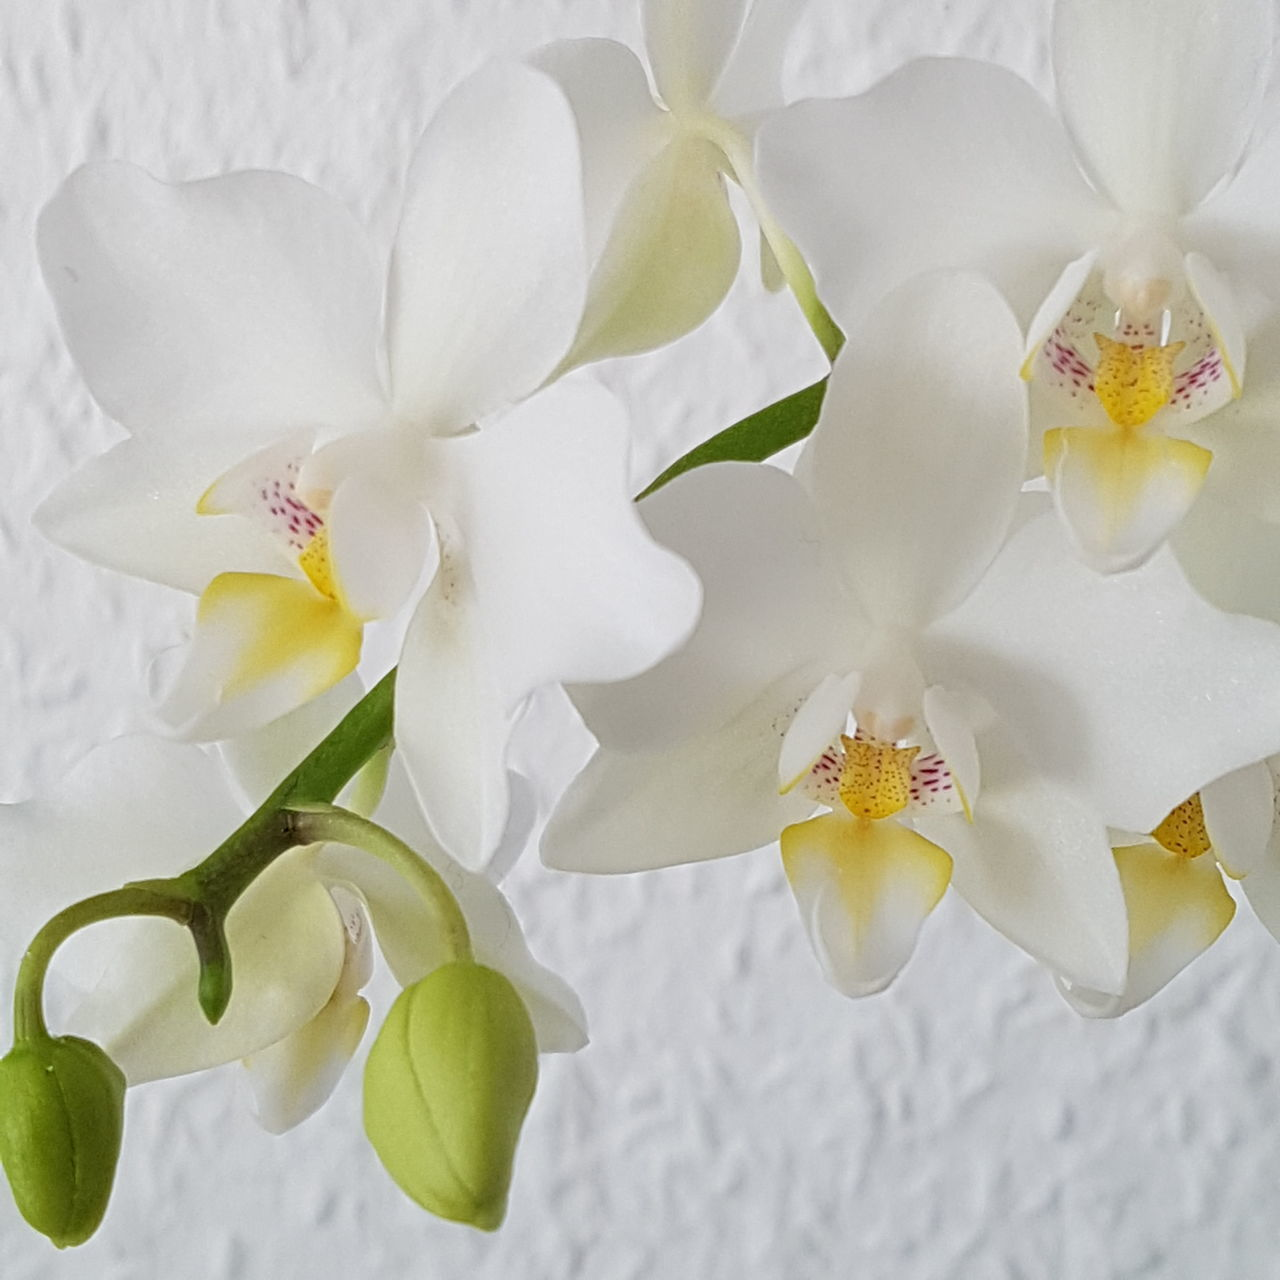 Flower Nature Plant No People Beauty Close-up Zen-like Flower Head Orchid Beauty In Nature Freshness Indoors  Day Eyeemphotography Orchid Focus On Foreground Orchids Orchid Blossoms